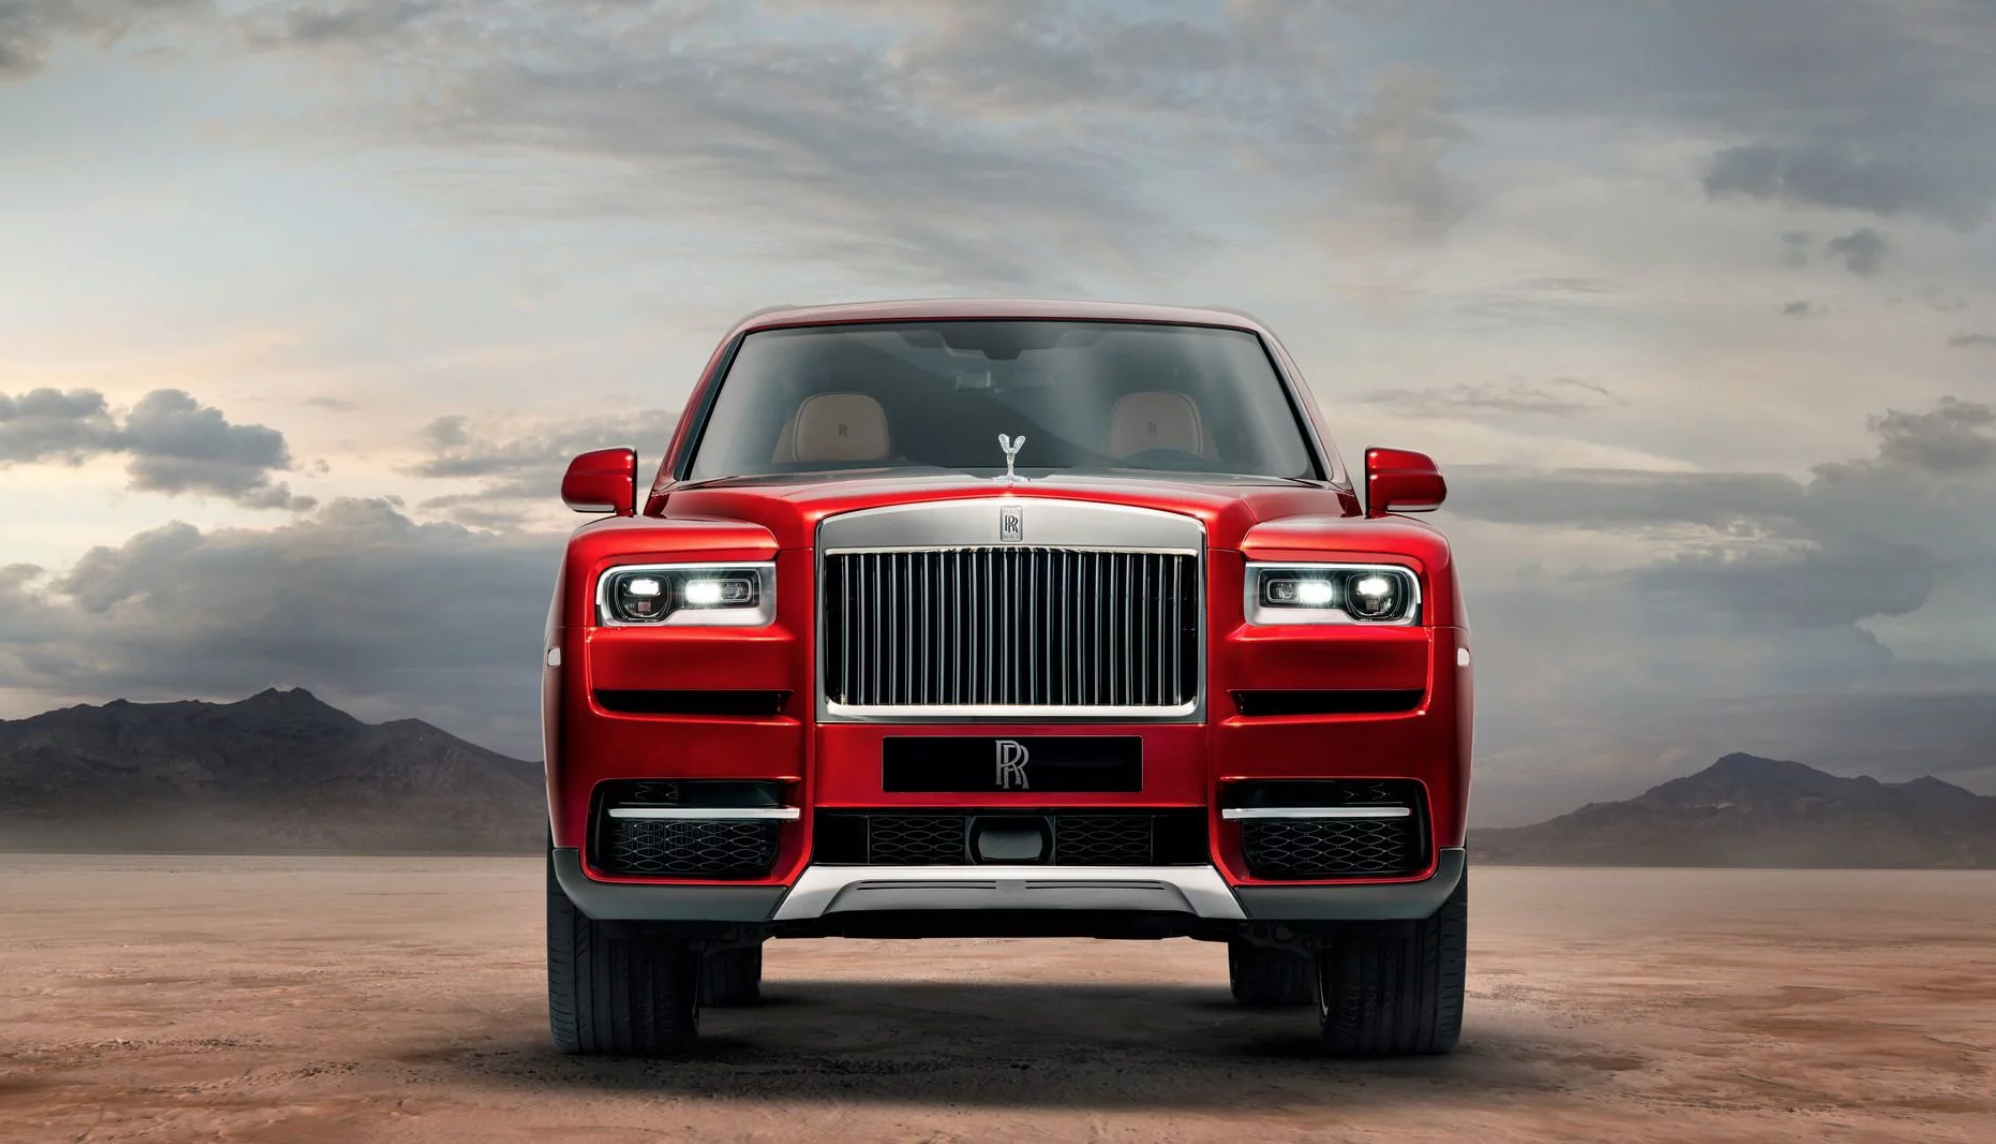 rolls-royce-cullinan-autodaily-05.png